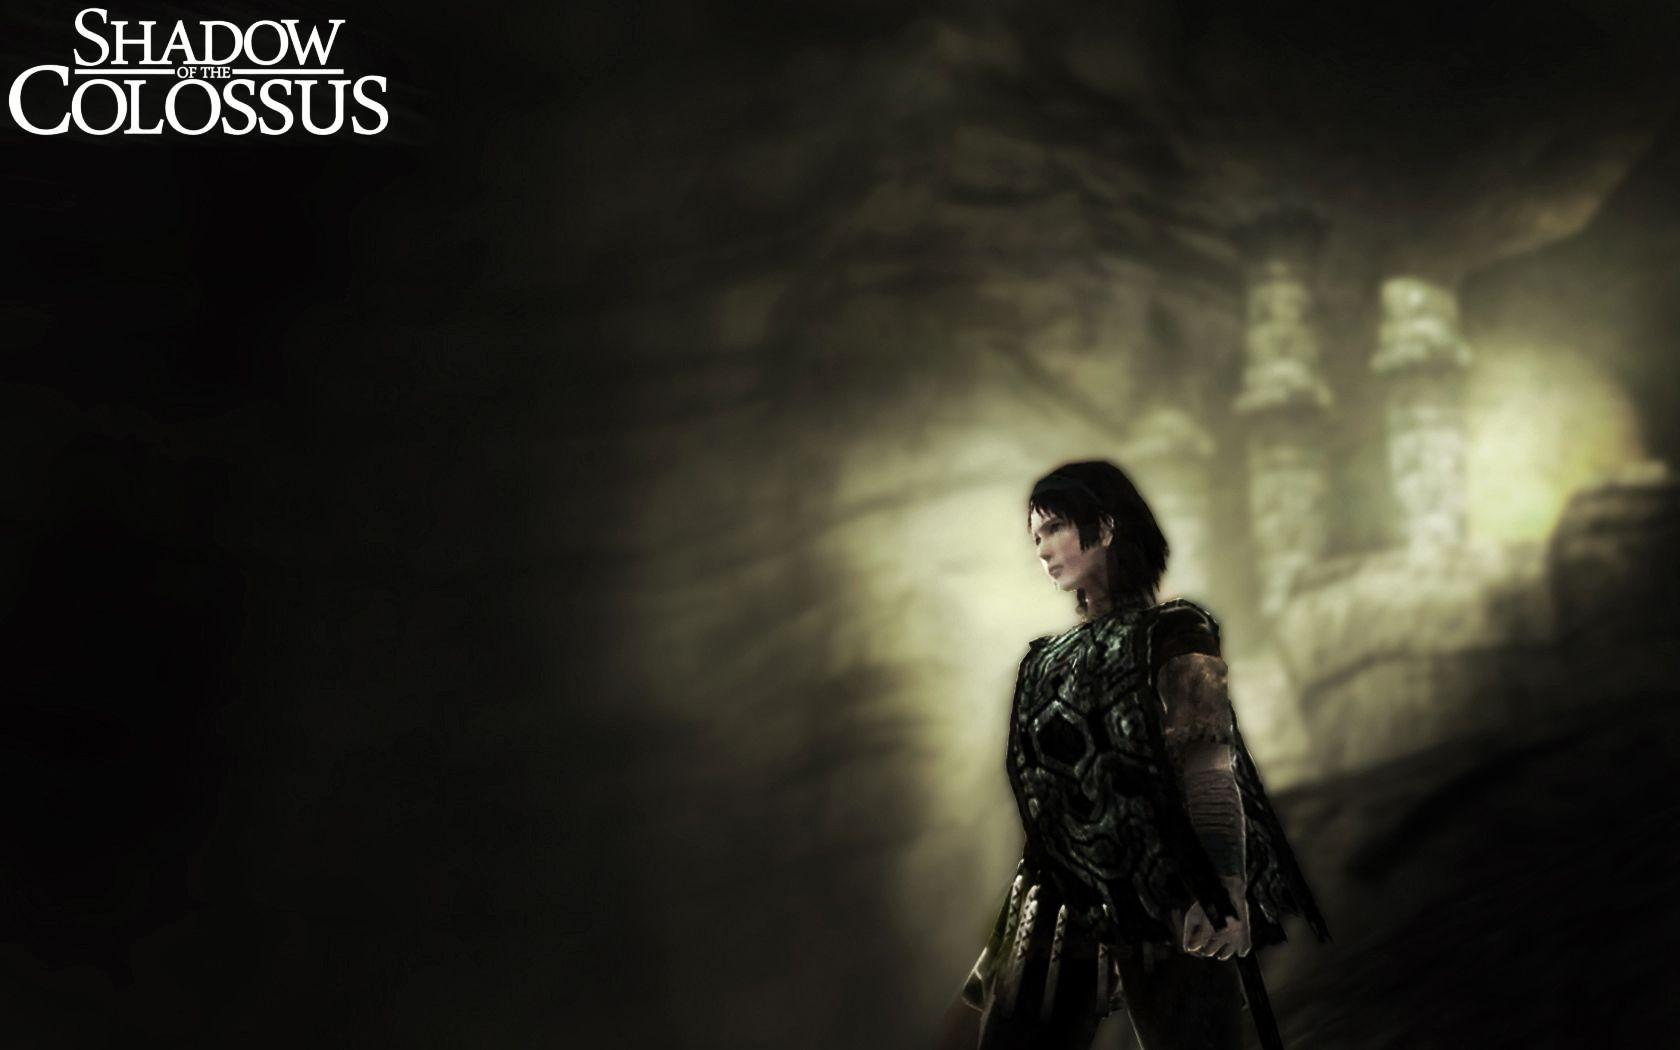 shadow of the colossus wallpaper images (64) - HD Wallpapers Buzz